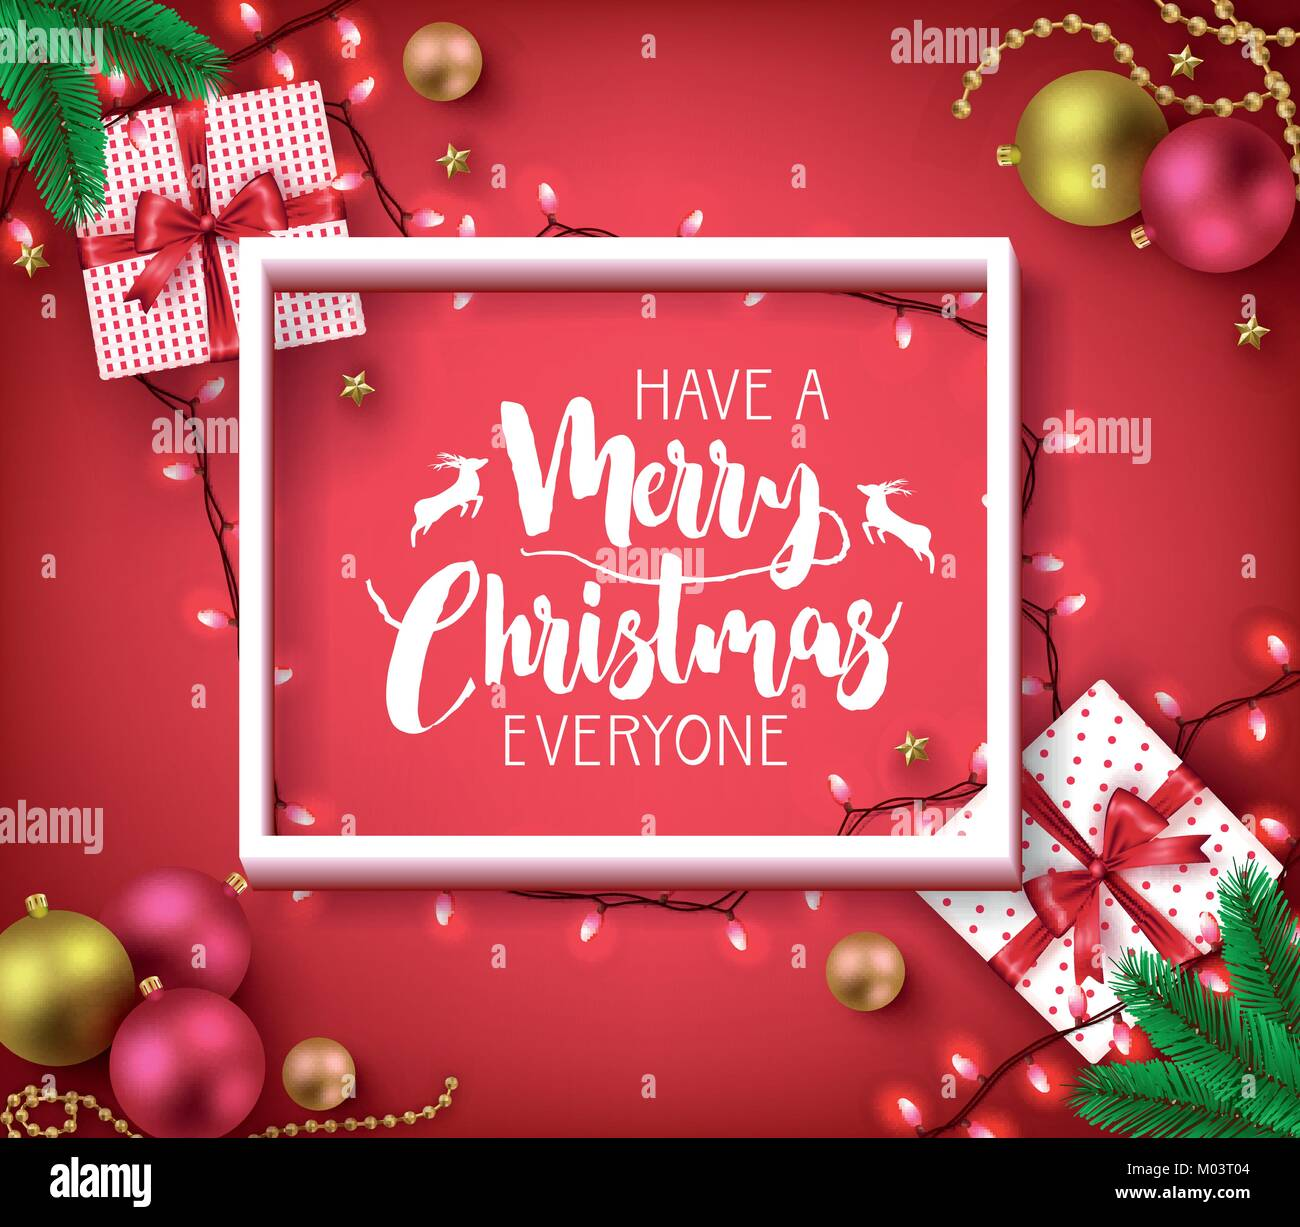 Have A Merry Christmas Everyone Greeting Typography Poster Inside of ...